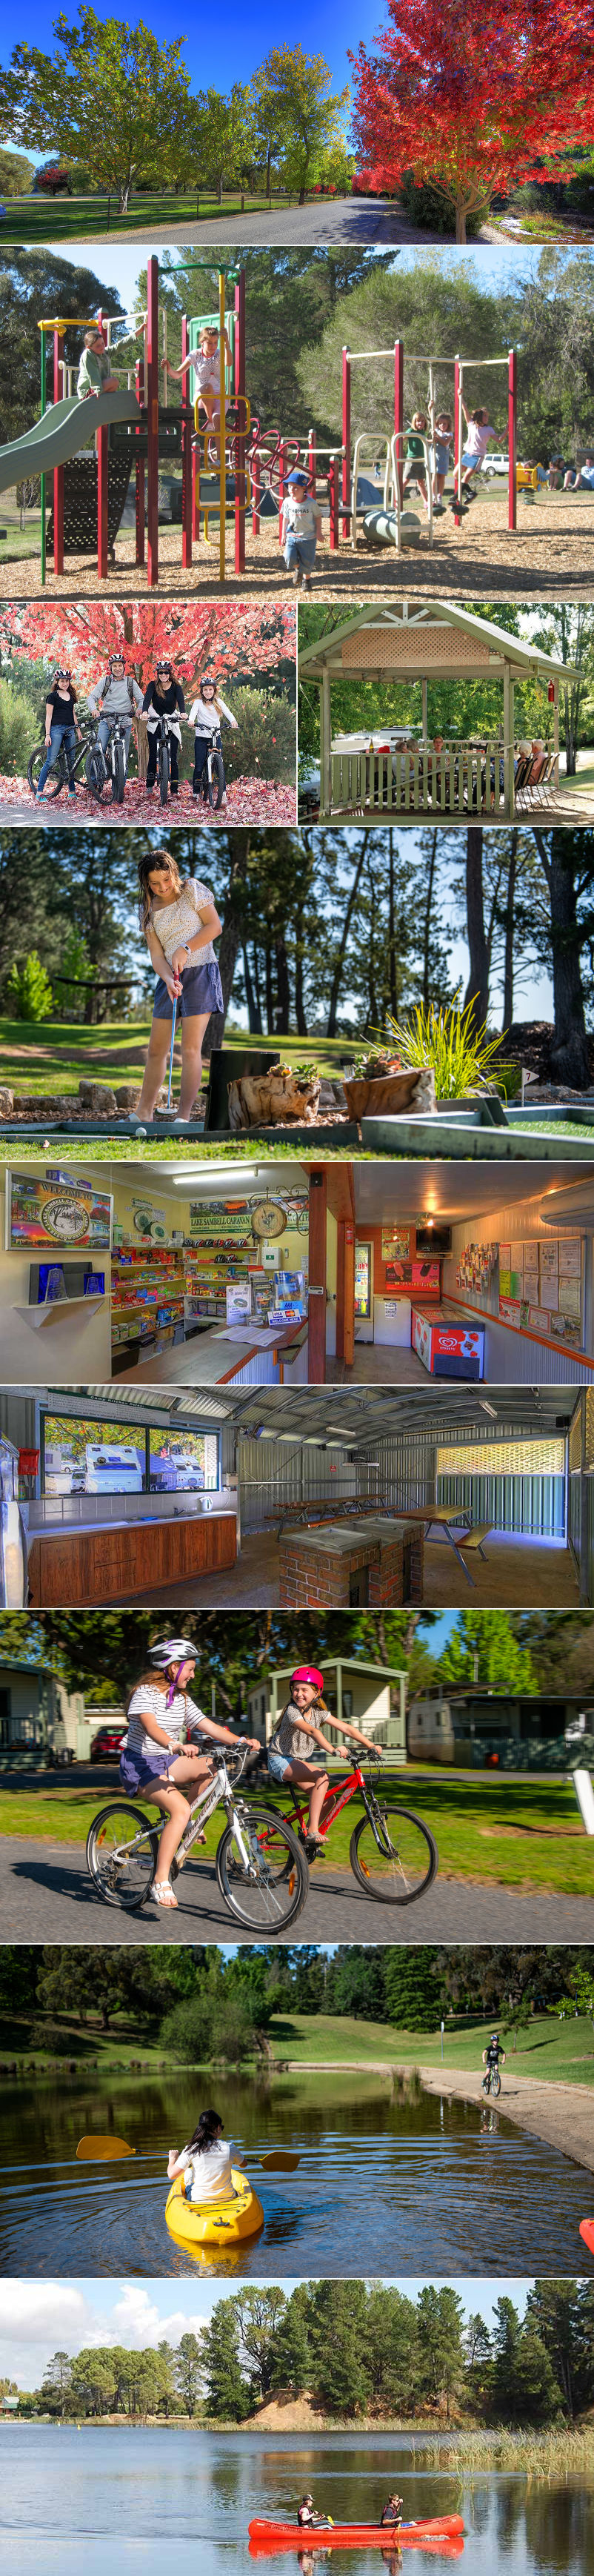 Beechworth Lake Sambell Caravan Park - grounds and facilities